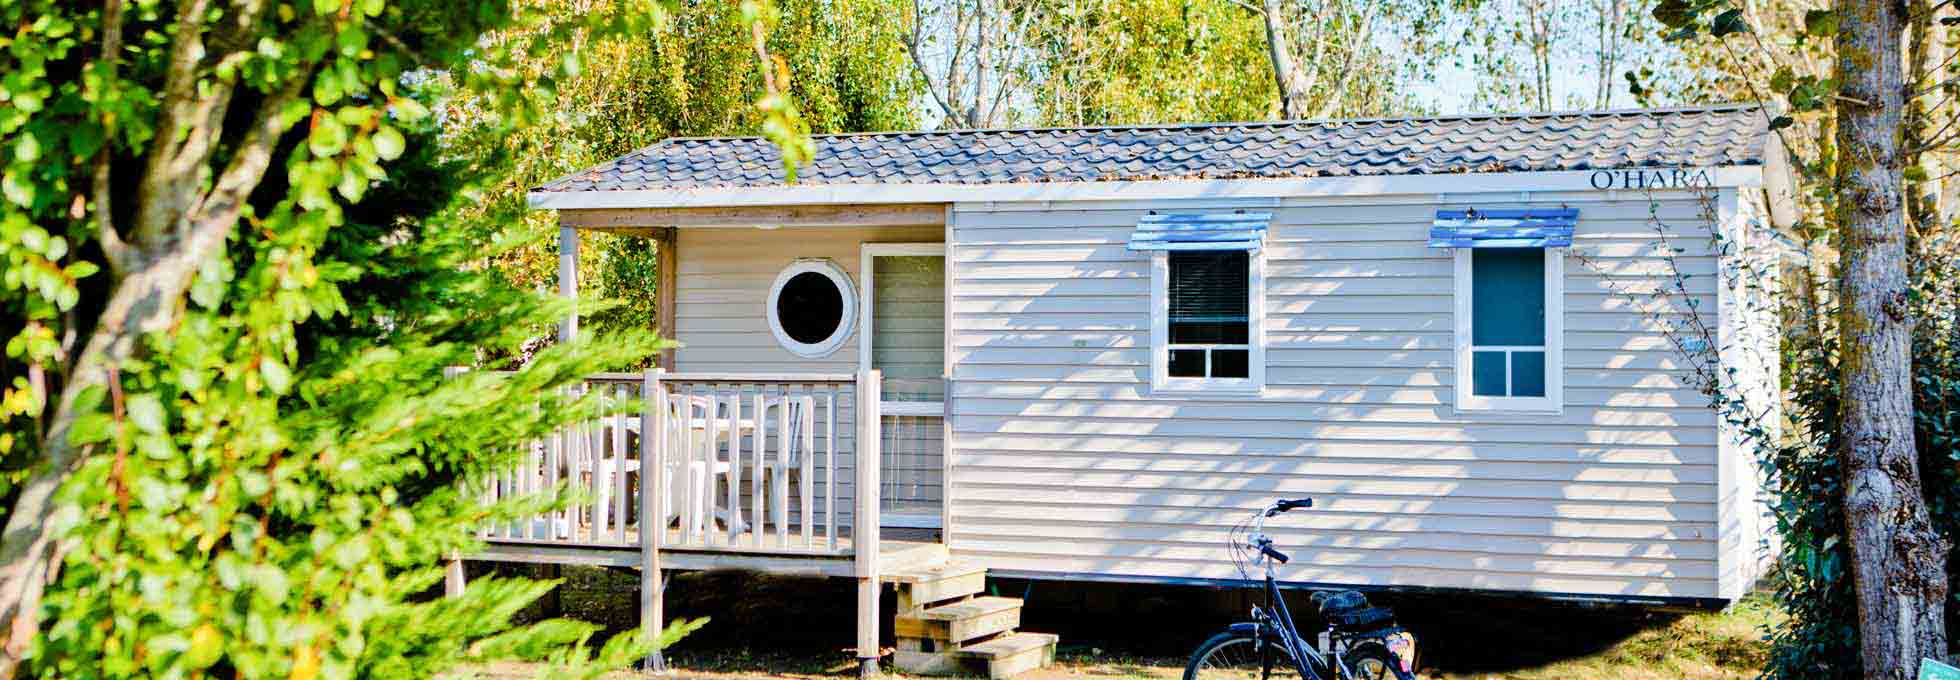 Location mobil home Confort sur l'ile de Re